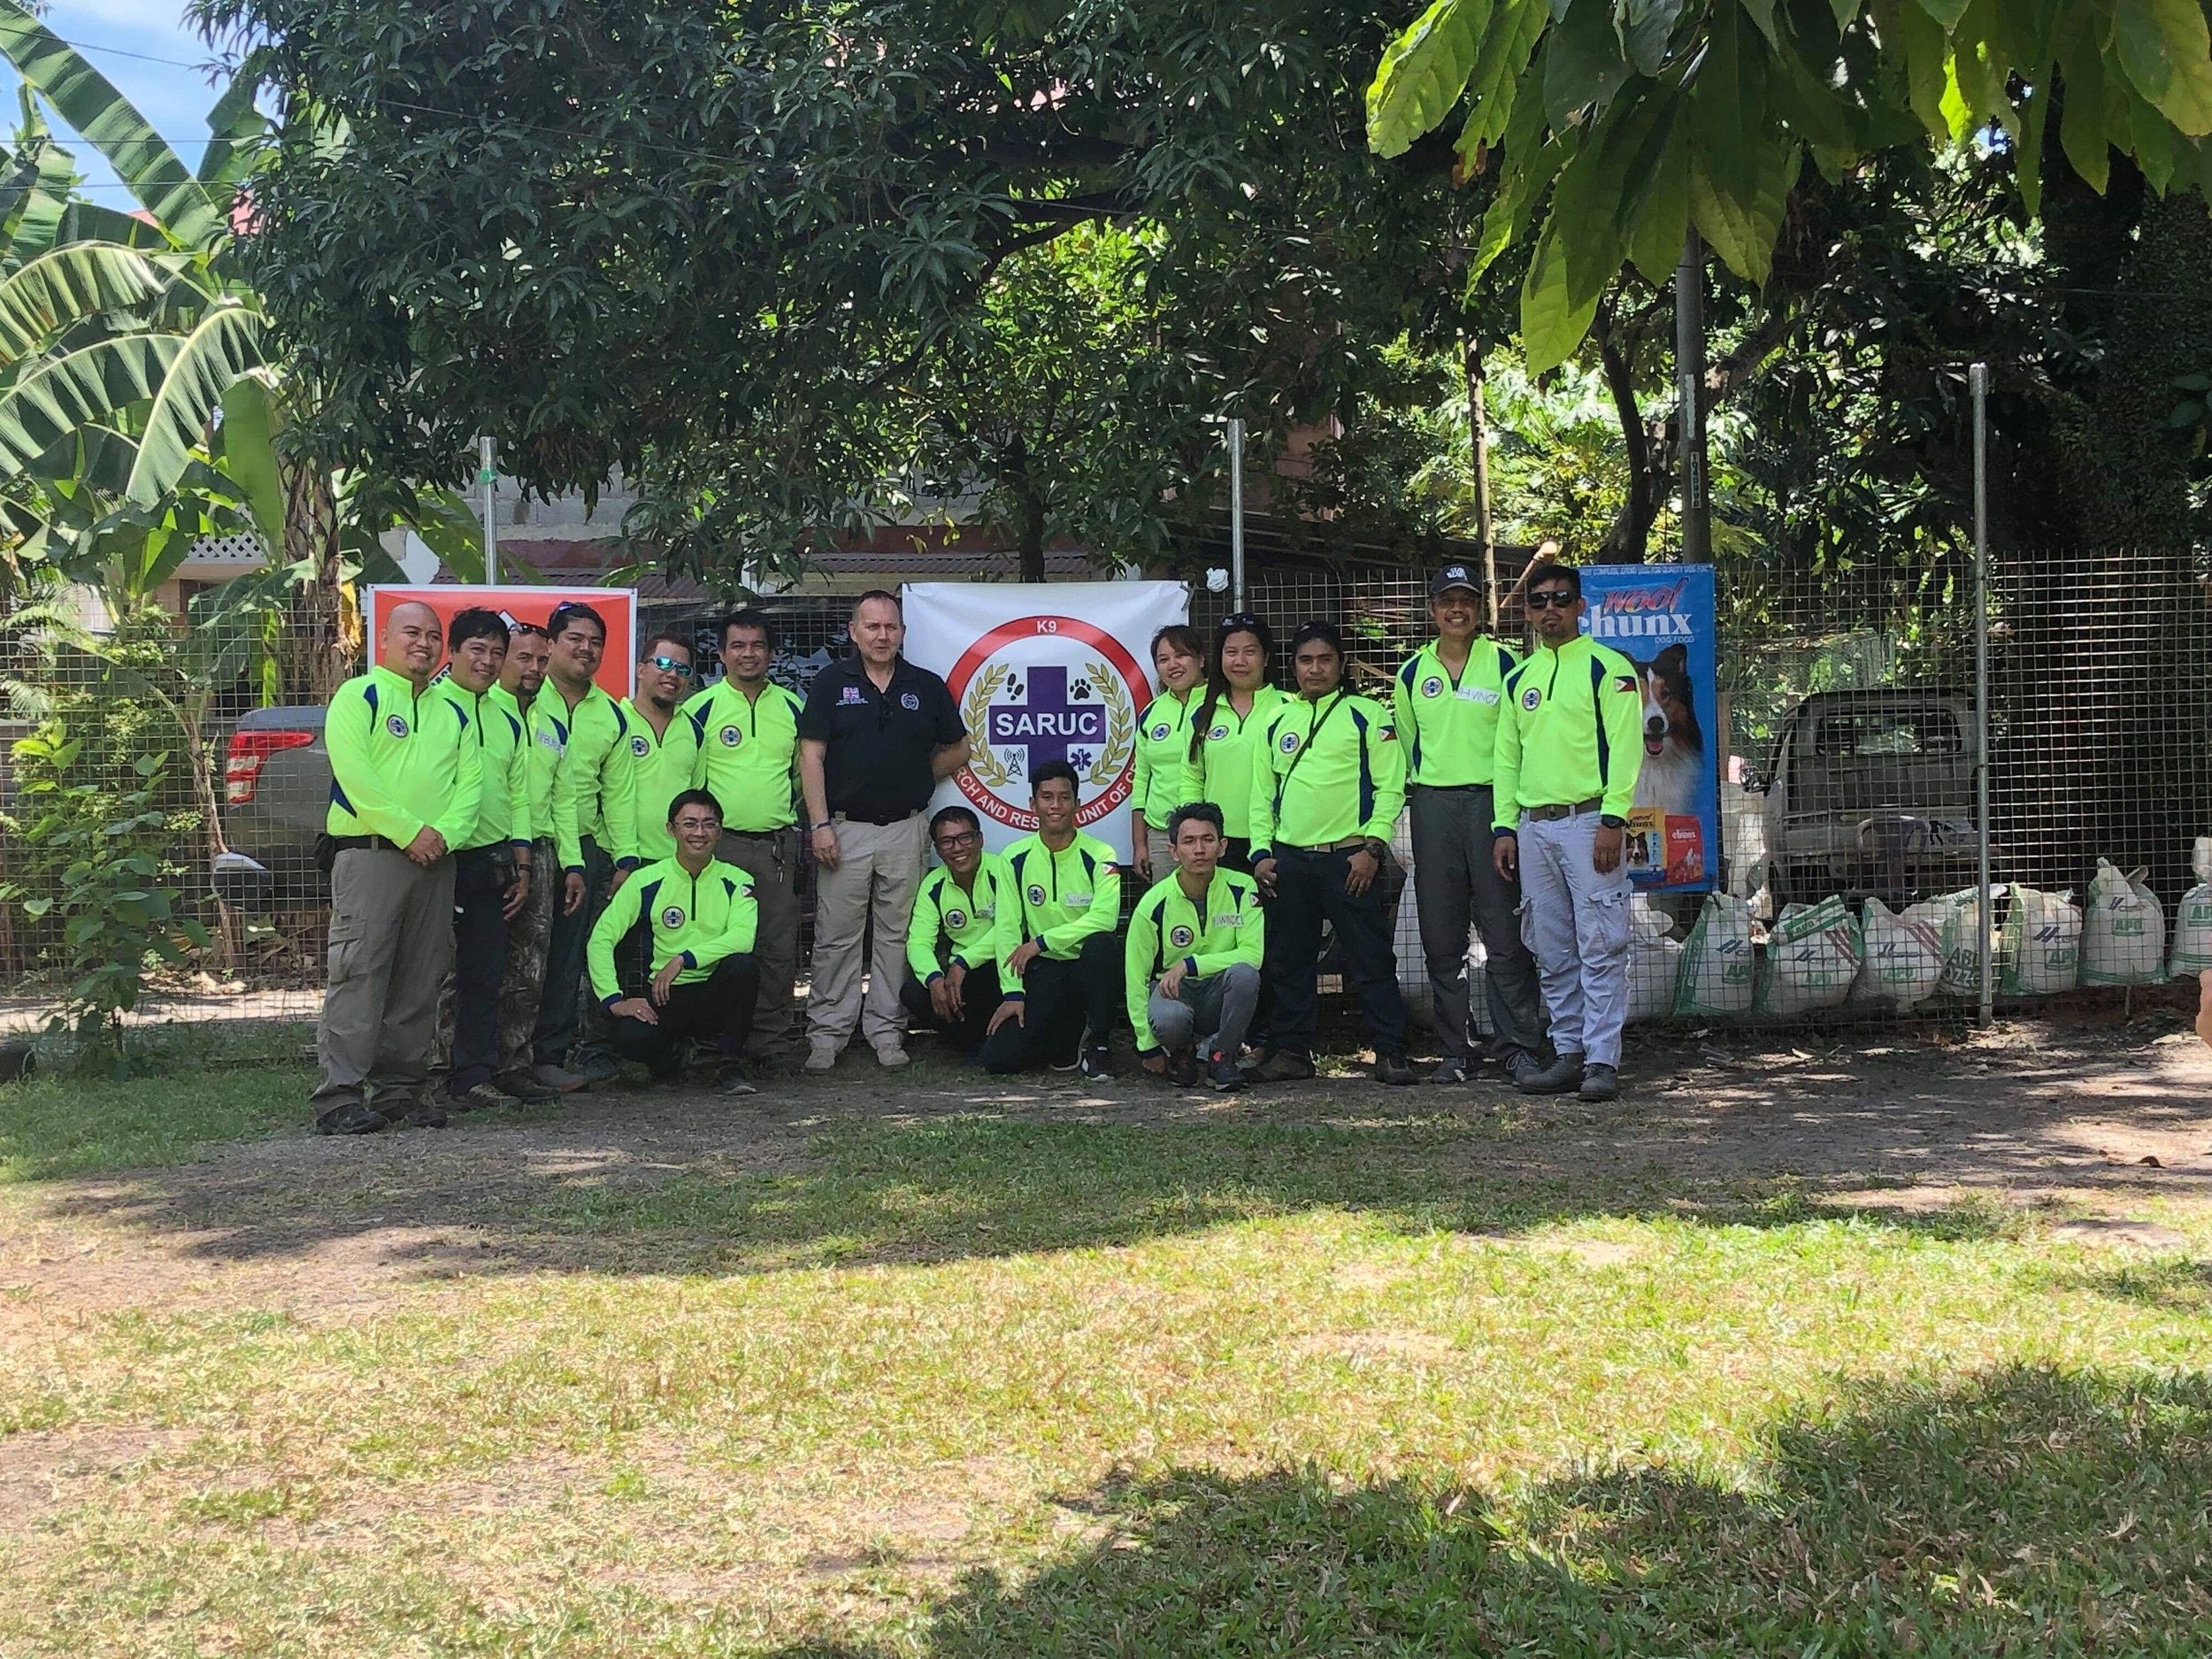 A new dog team for the Philippines - the Search and Rescue Unit of Cebu (SARUC) - has been launched with the help of Serve On volunteers.